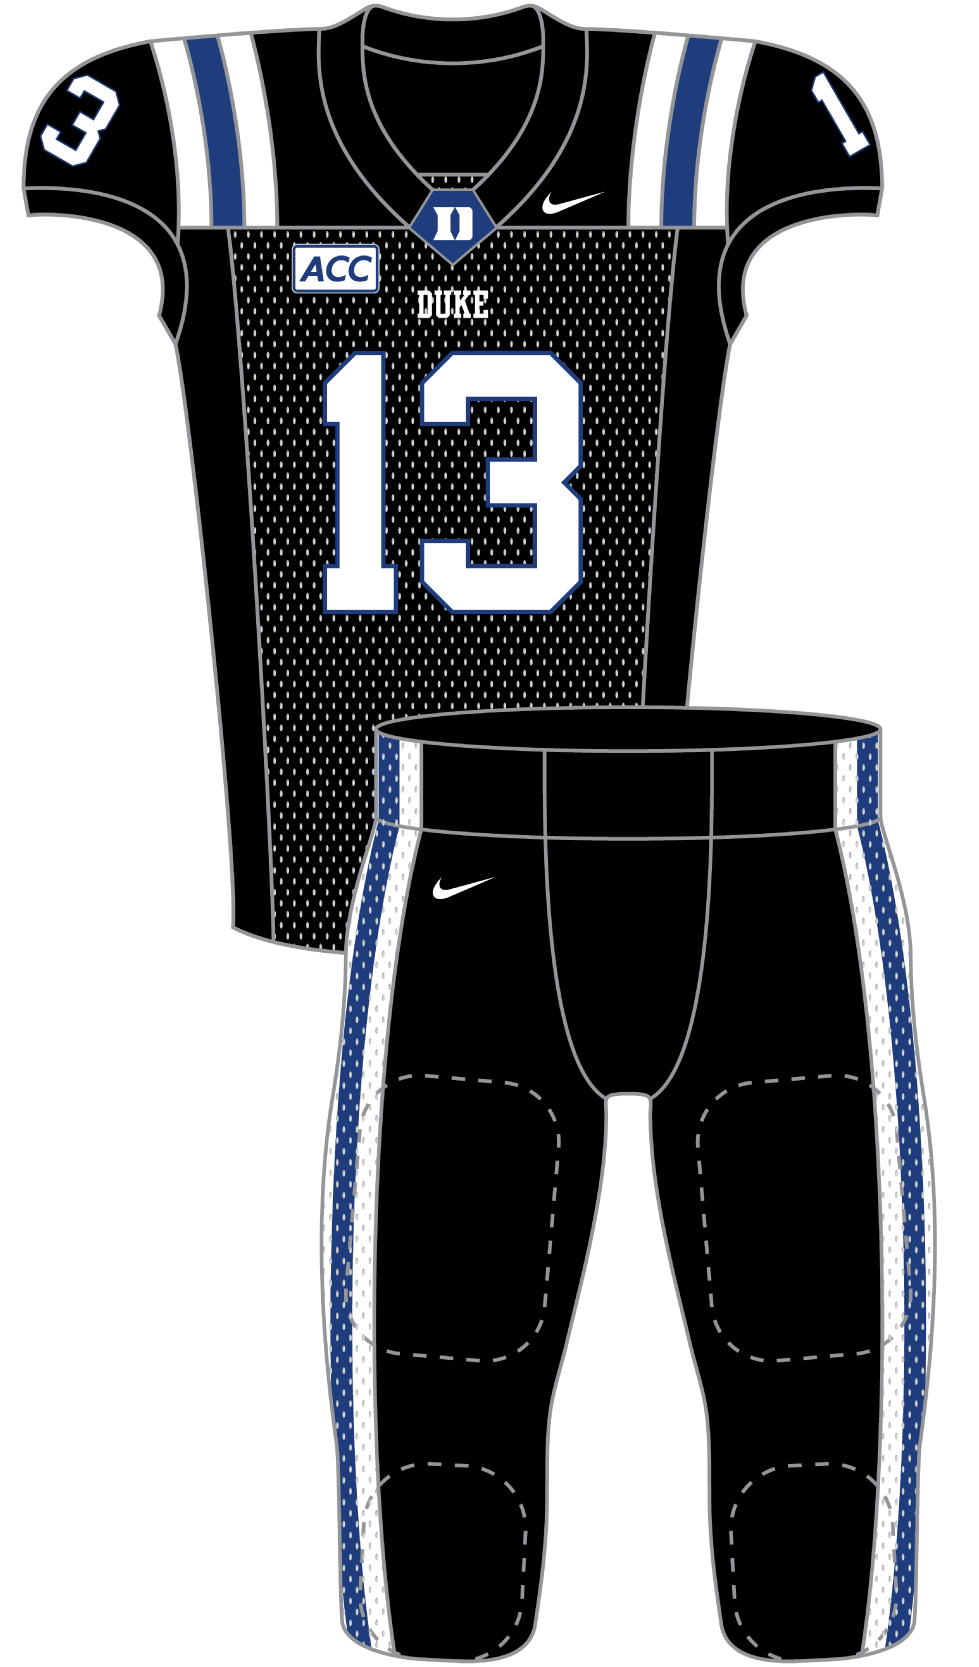 Duke 2013 Black Uniform